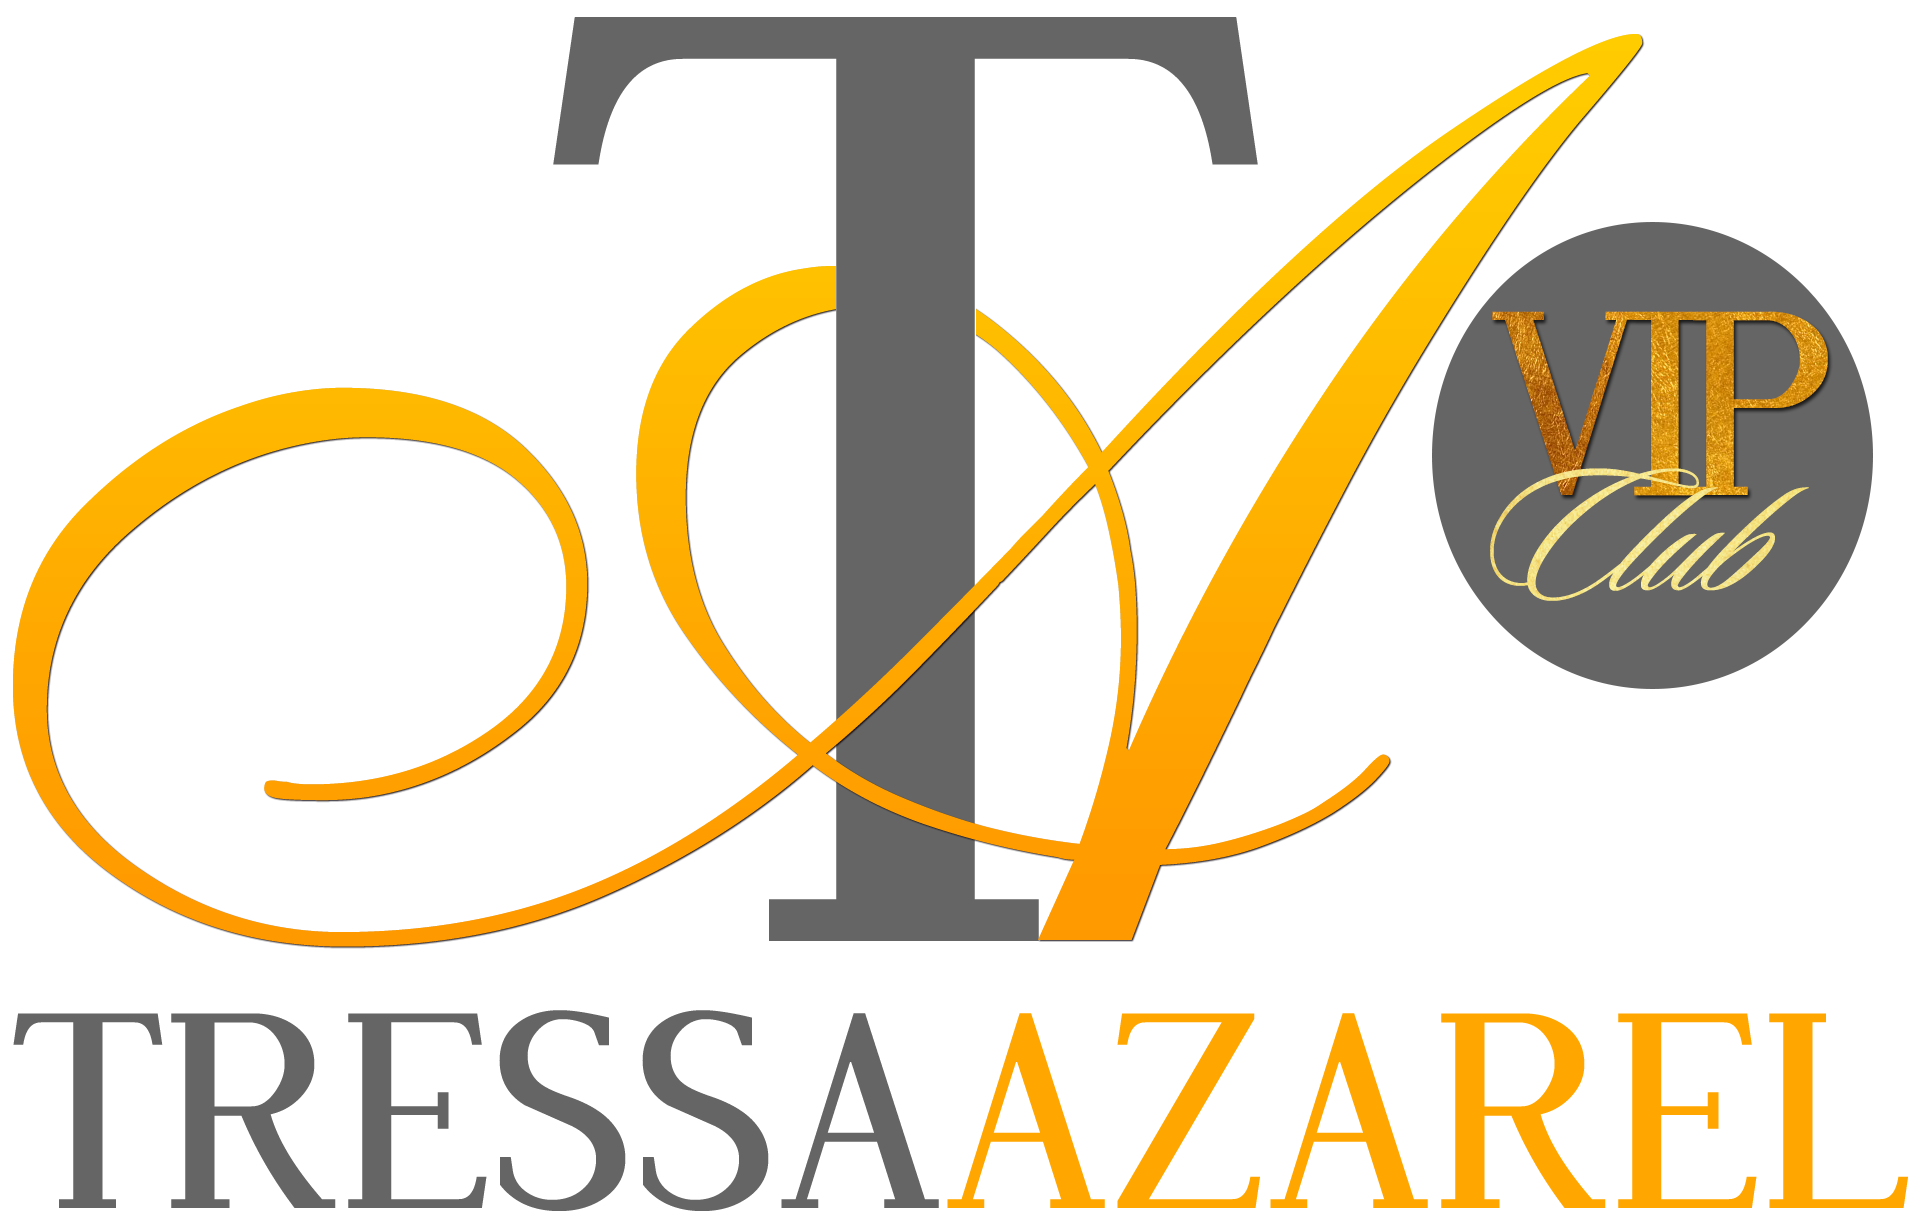 TressaAzarel VIP Club